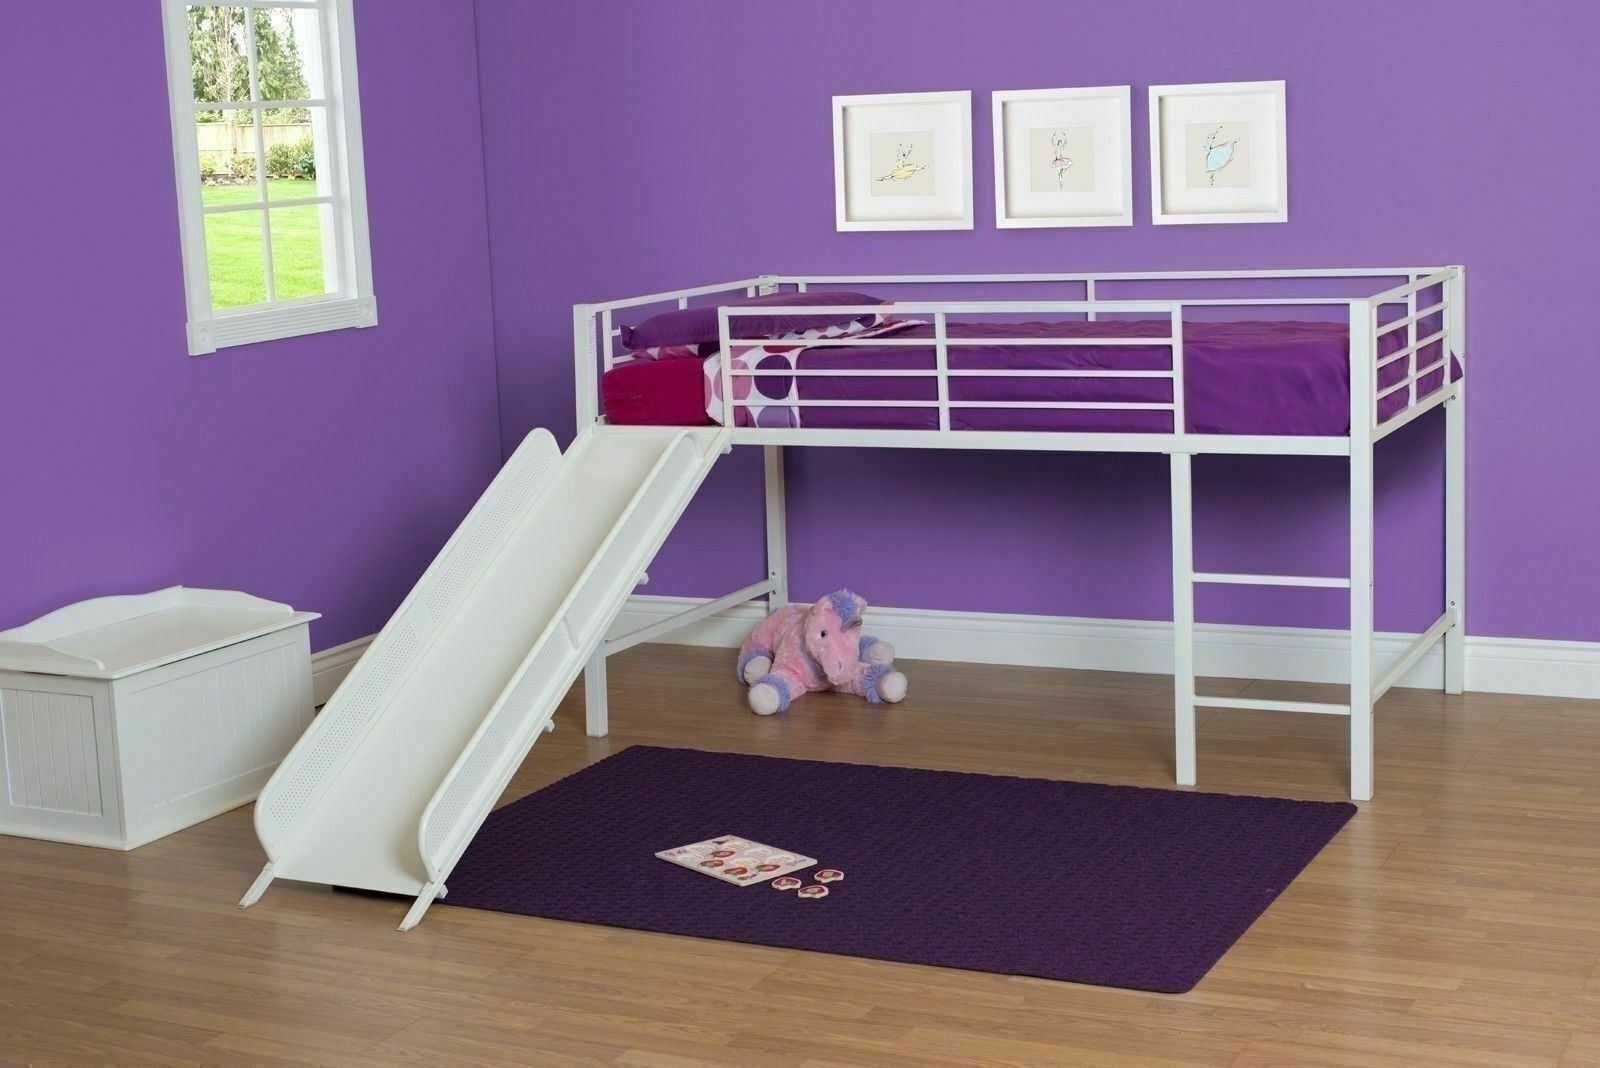 White Junior Loft Bed With Metal Slide Twin Size Bunk Kids Play Furniture Fun For Sale Online Ebay